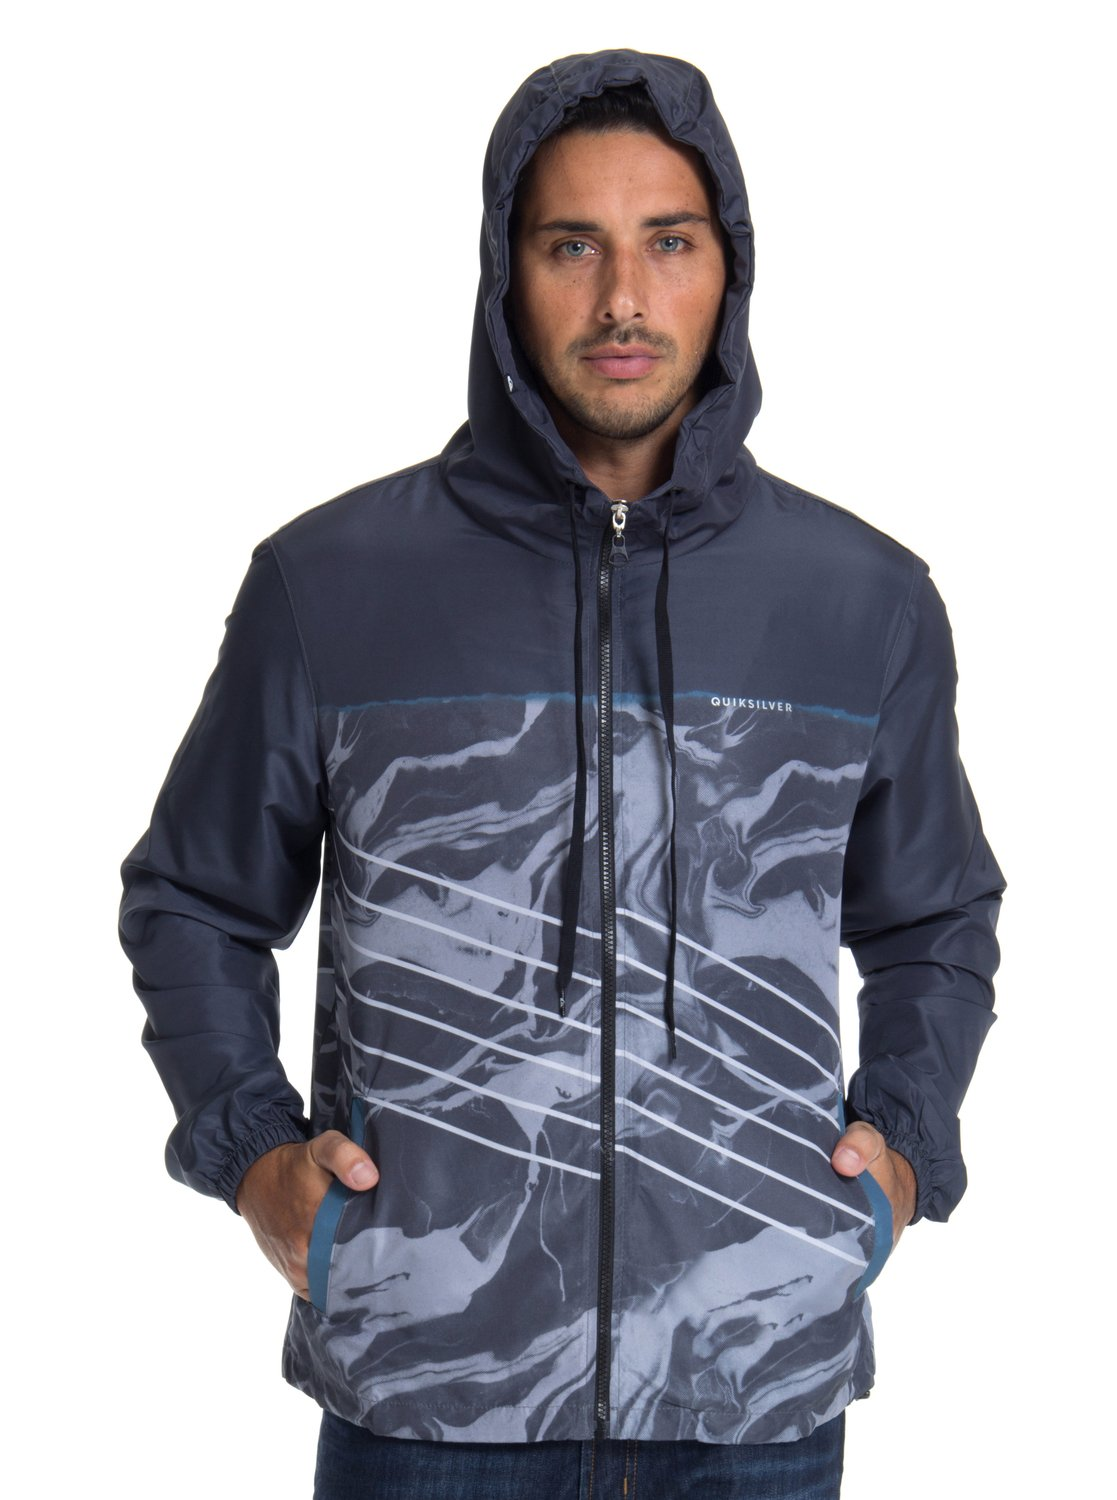 fbaeb7cb3 2 Jaqueta c  Capuz Regular Fit Highline Lava Slash Quiksilver BR64451255  Quiksilver